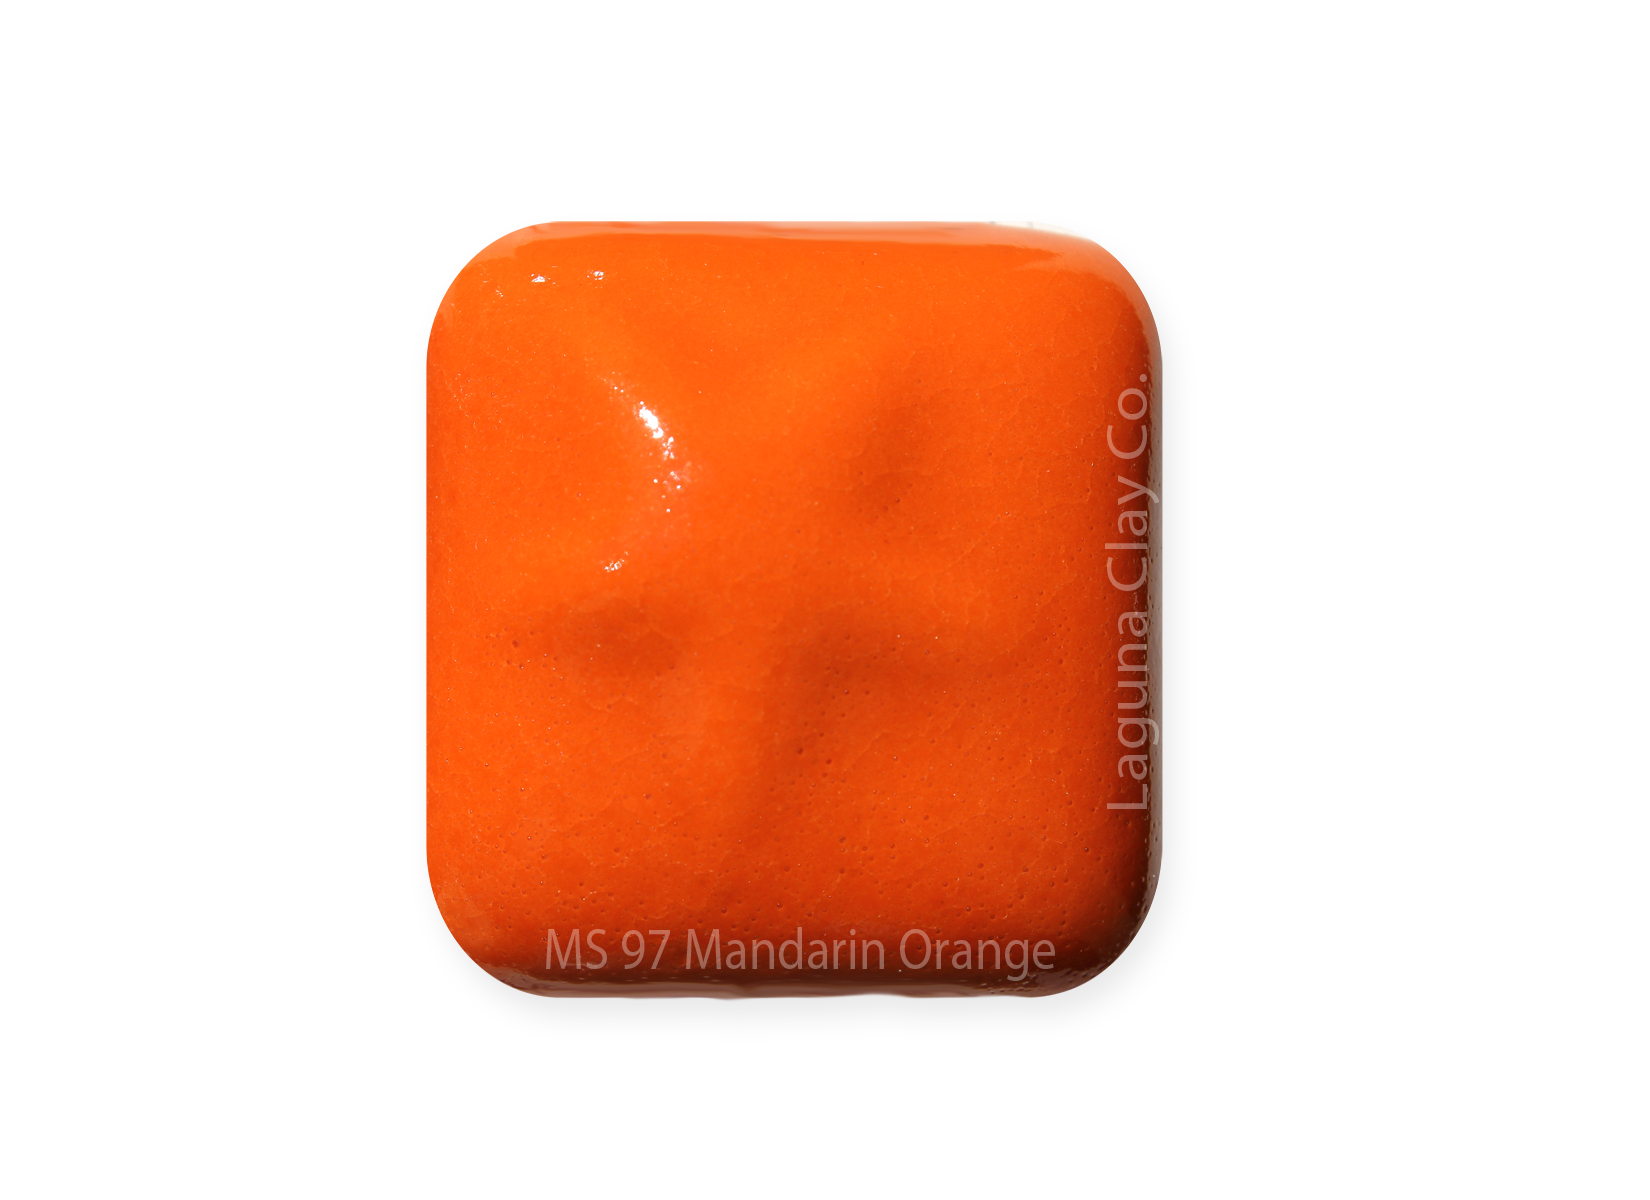 MS-97 Mandarin Orange